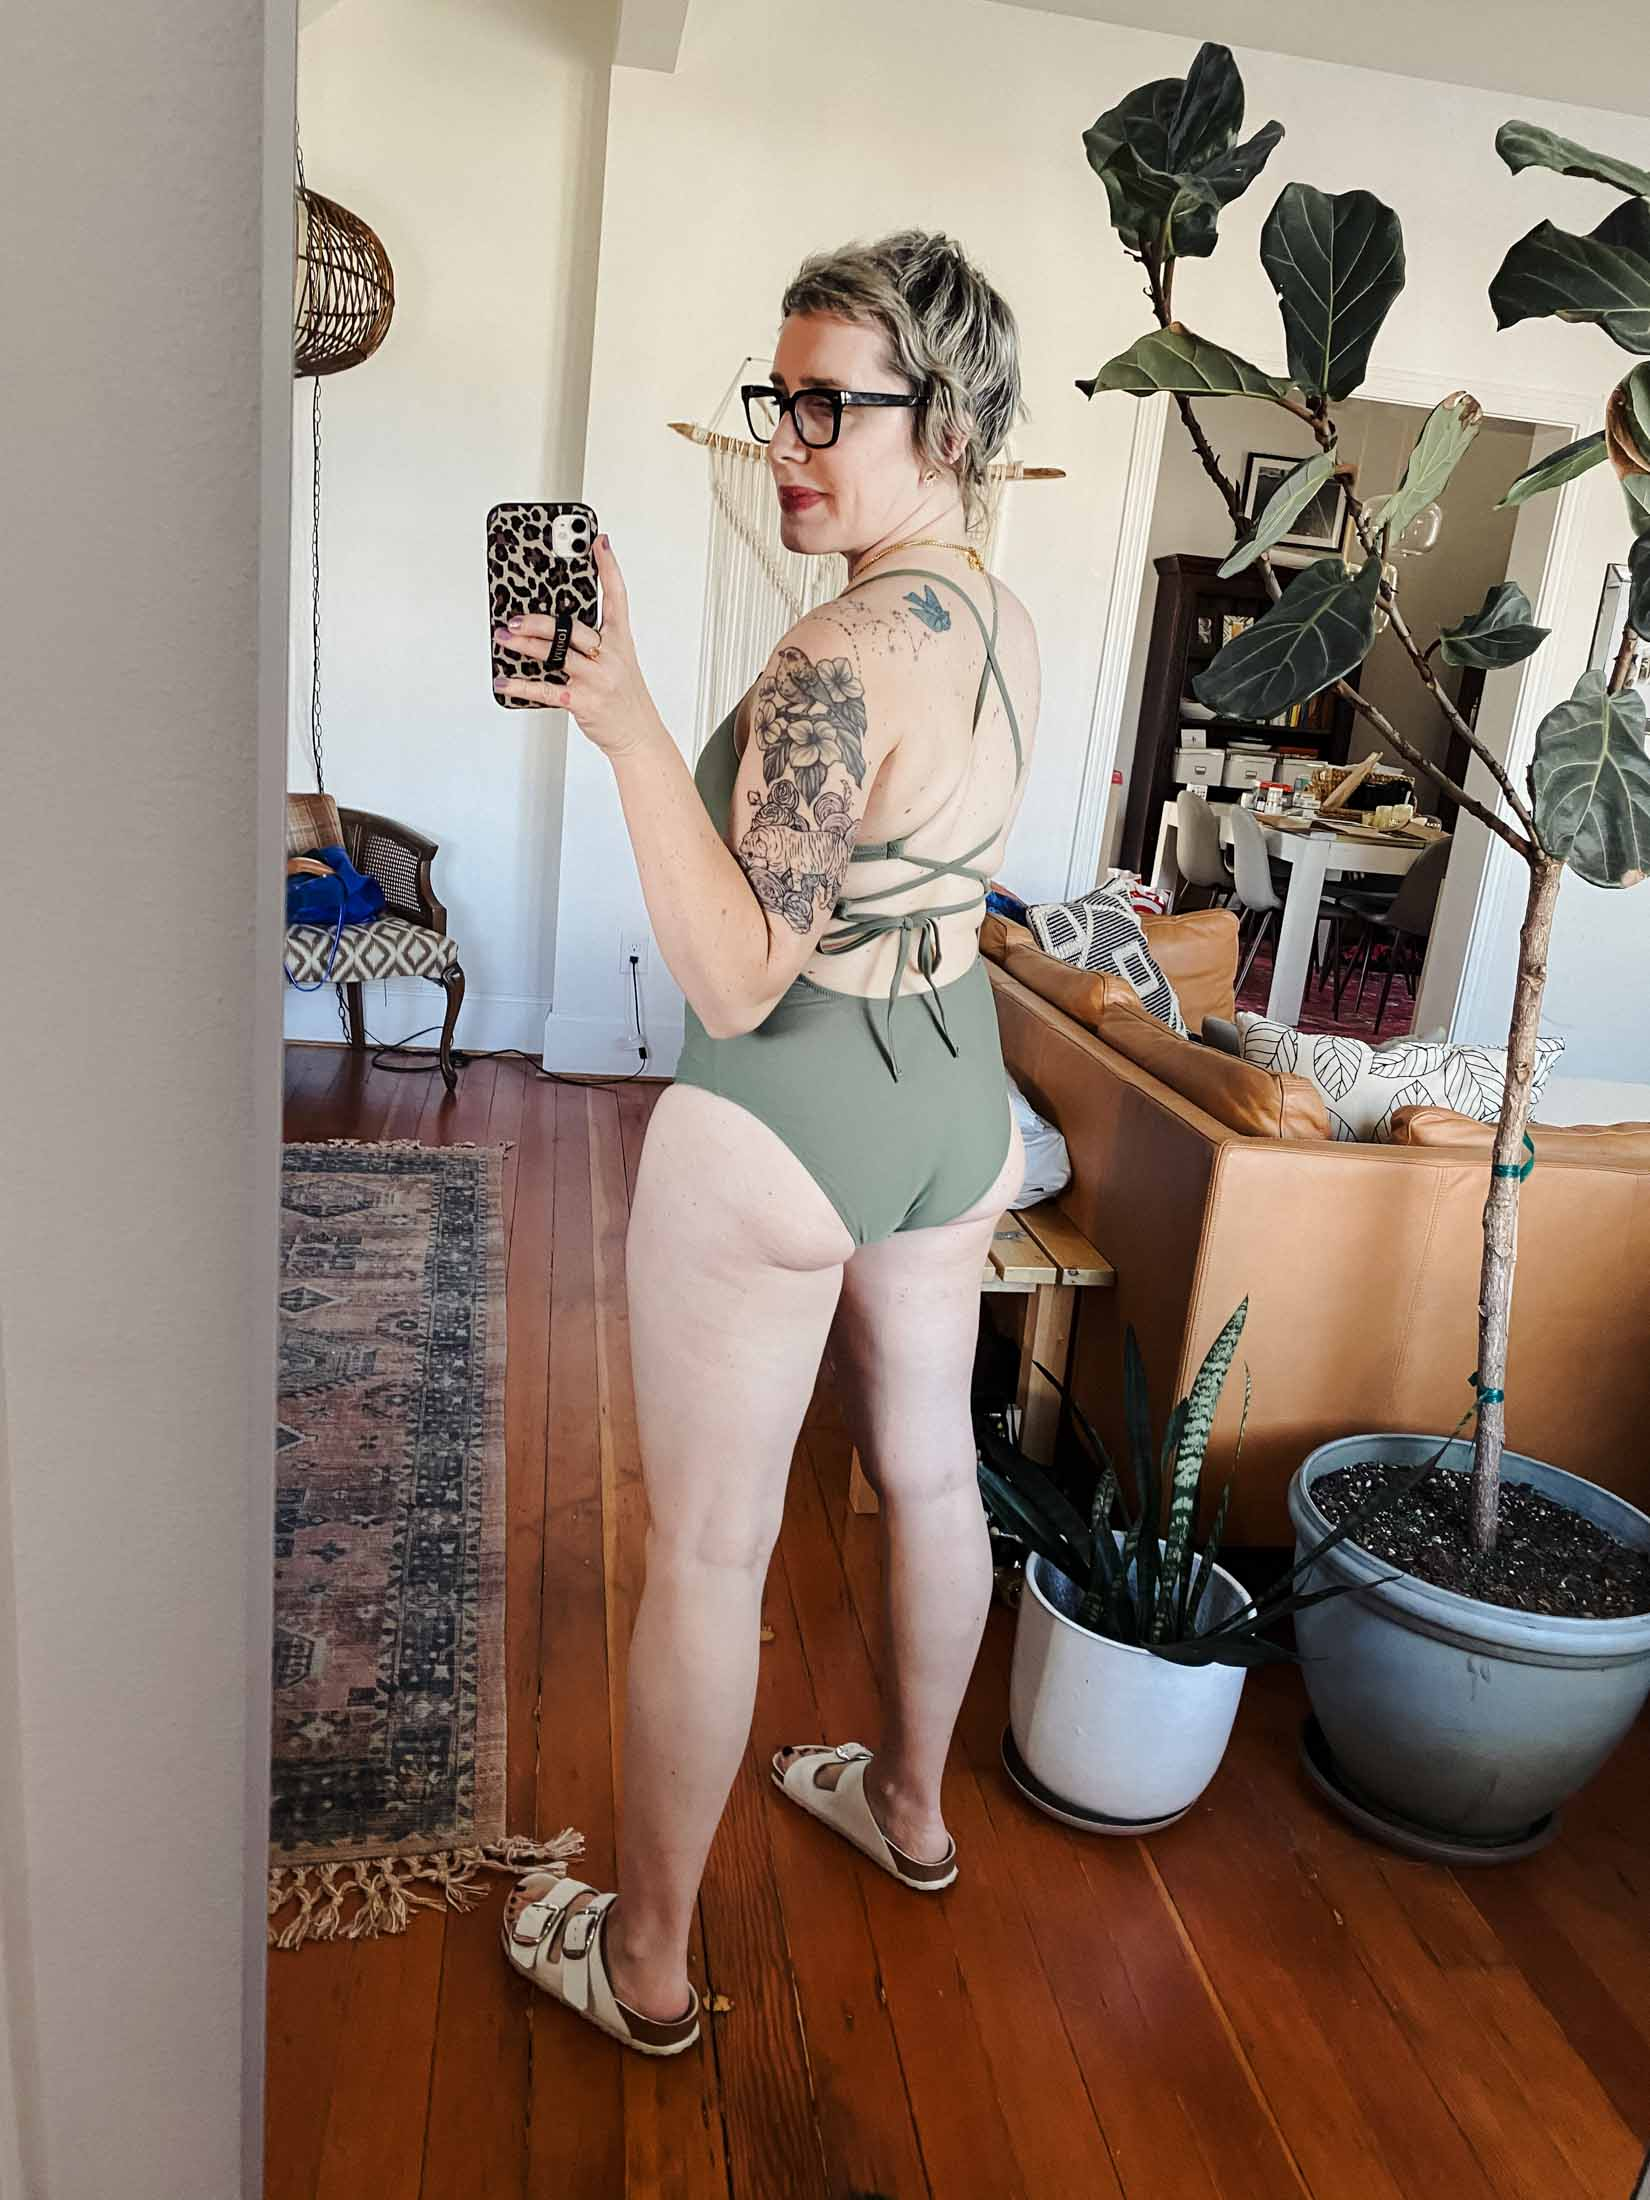 Aerie swimwear is totes popular, and while they make great swimsuits for younger folx, y'all, spoiler alert: women over 40 can rock them, too!